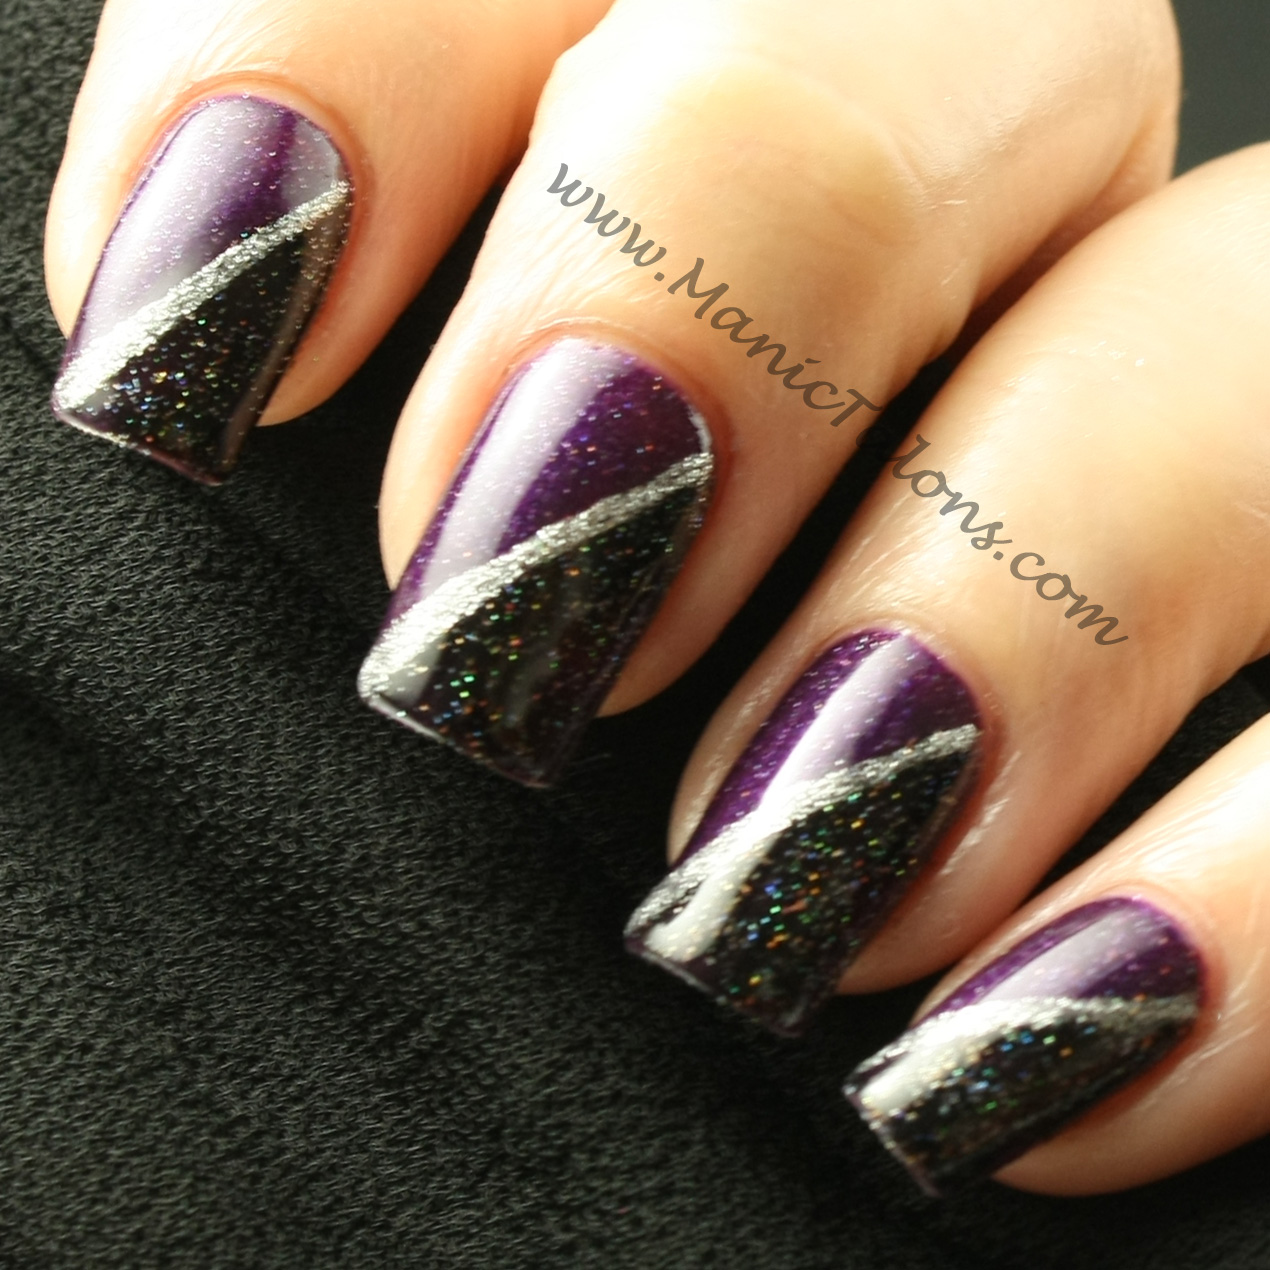 Manic Talons Nail Design: November 2013